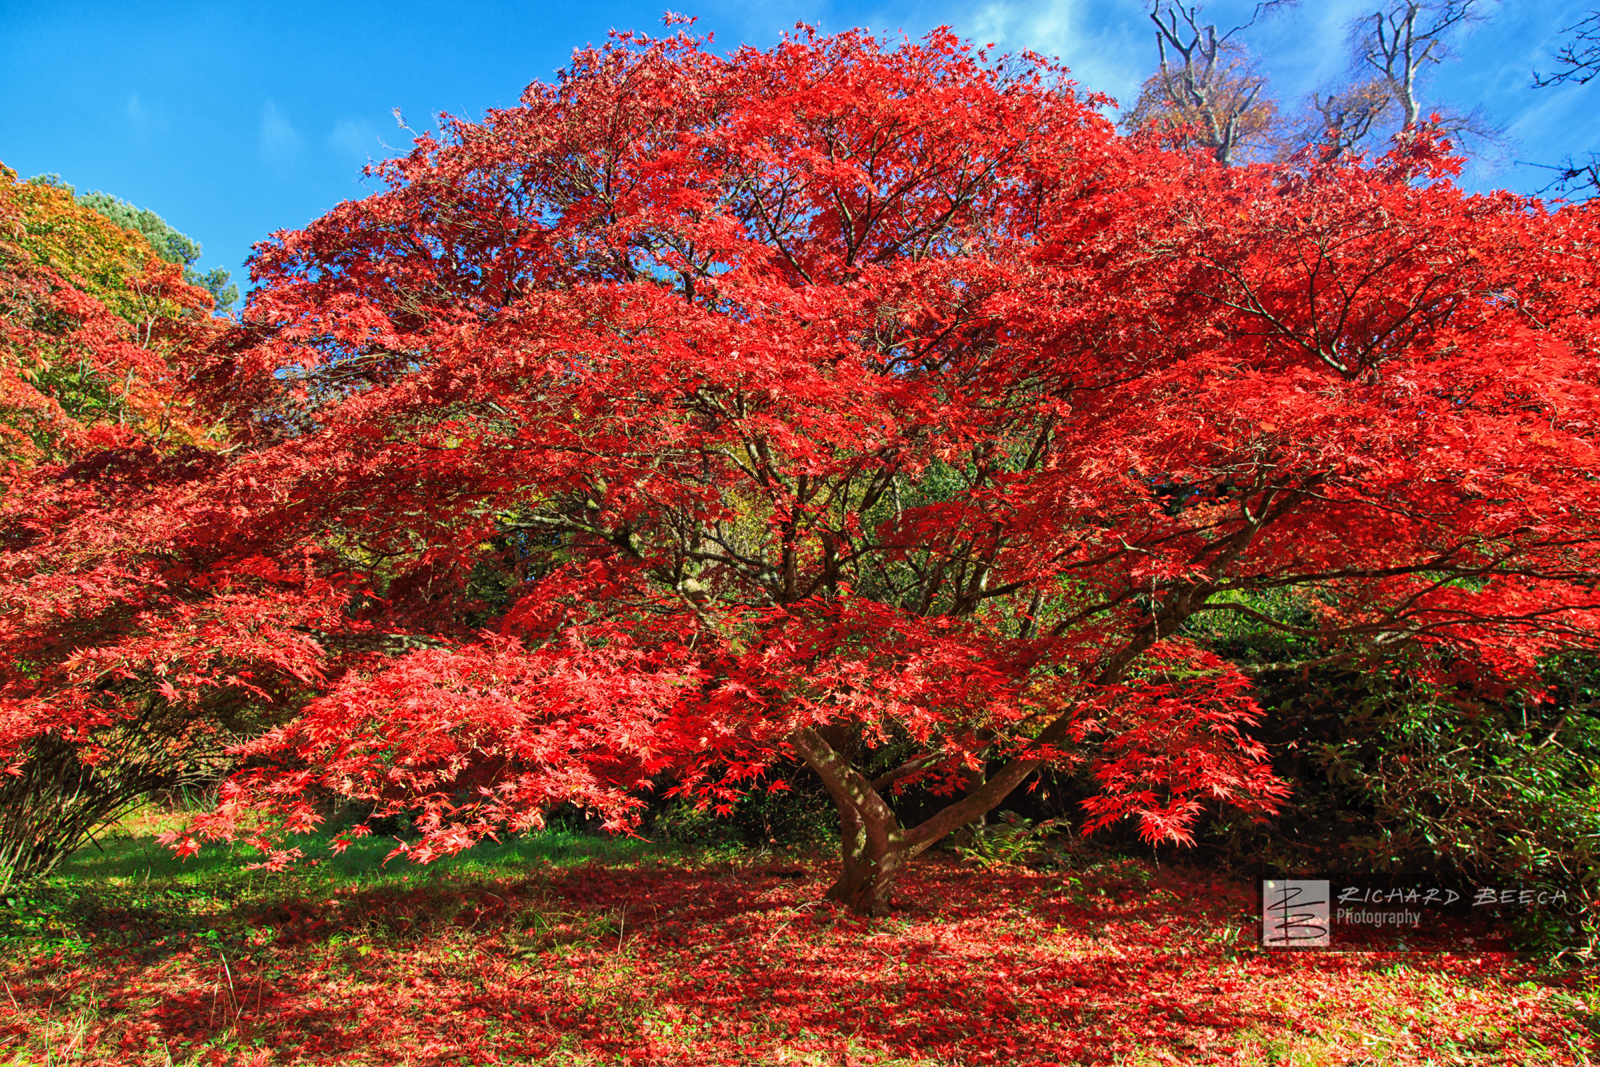 Red Tree at Minterne